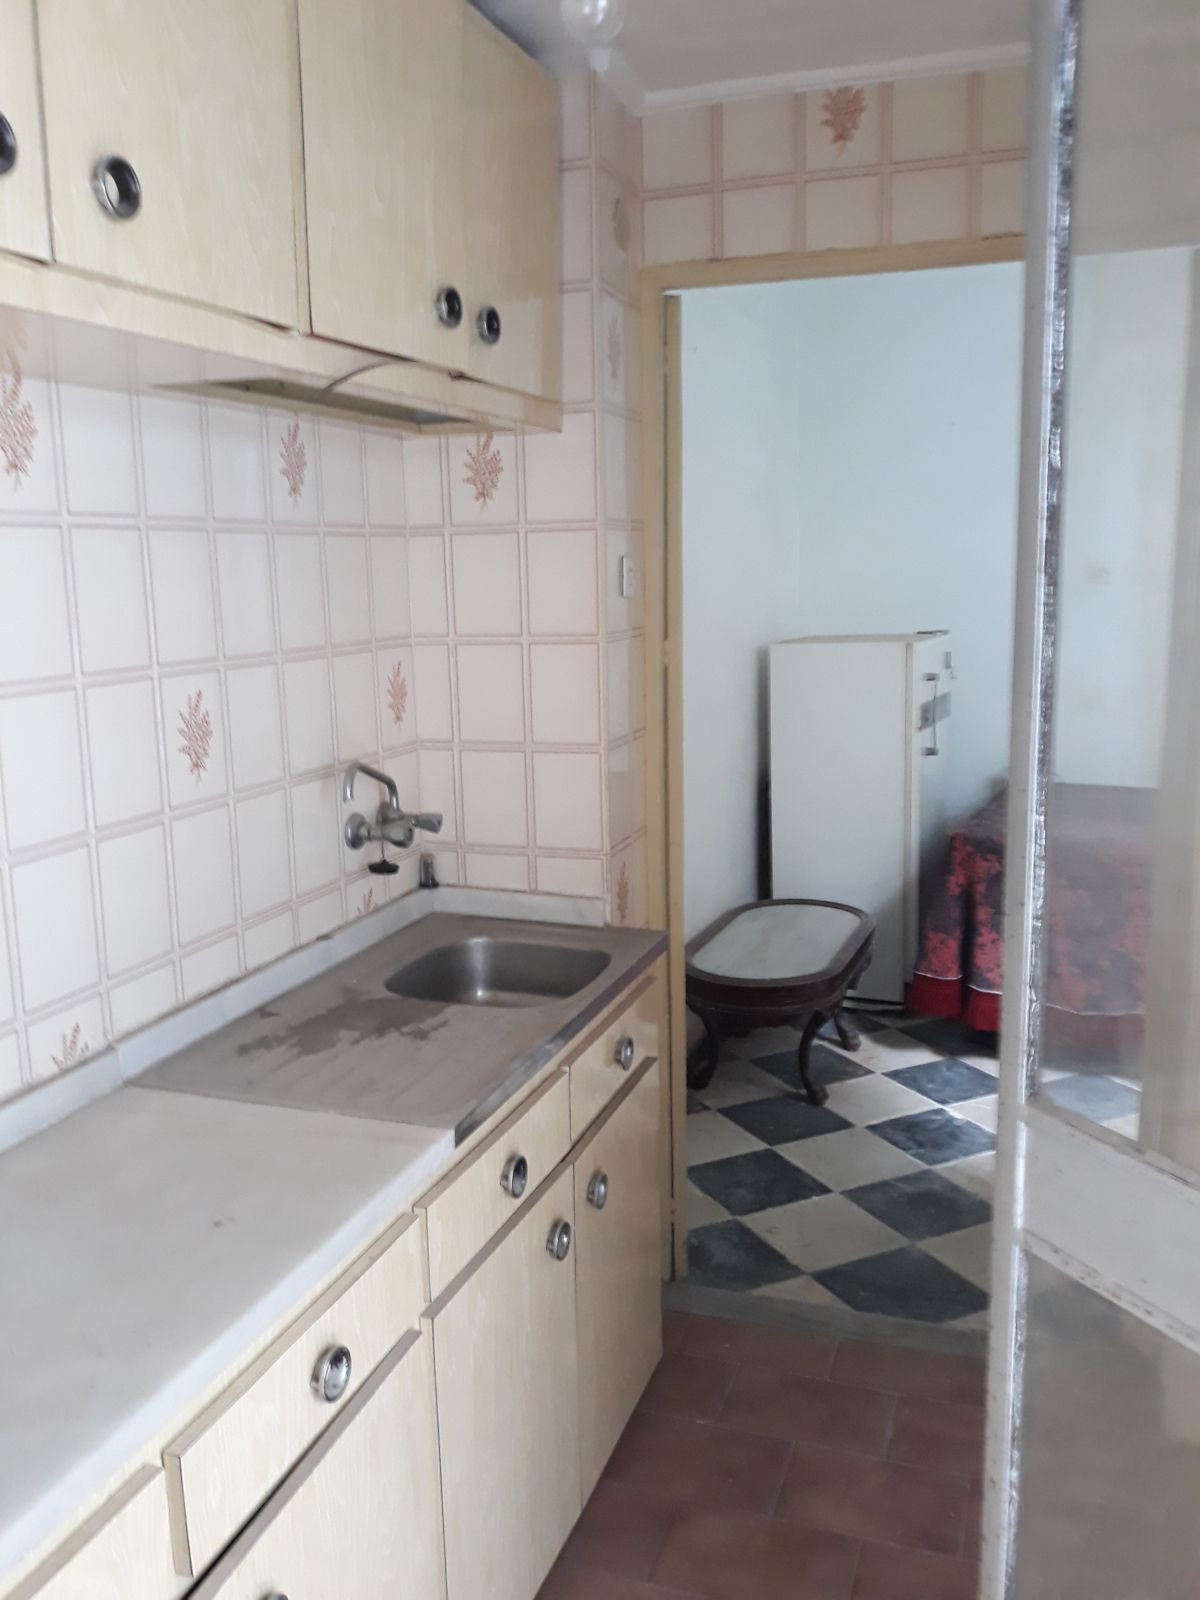 HOUSE TO RENOVATE IN THE CENTER OF THE TOWN WITH 60.90 M2 USEFUL APPROXIMATE BY PLANT, CONSISTS OF E,Spain